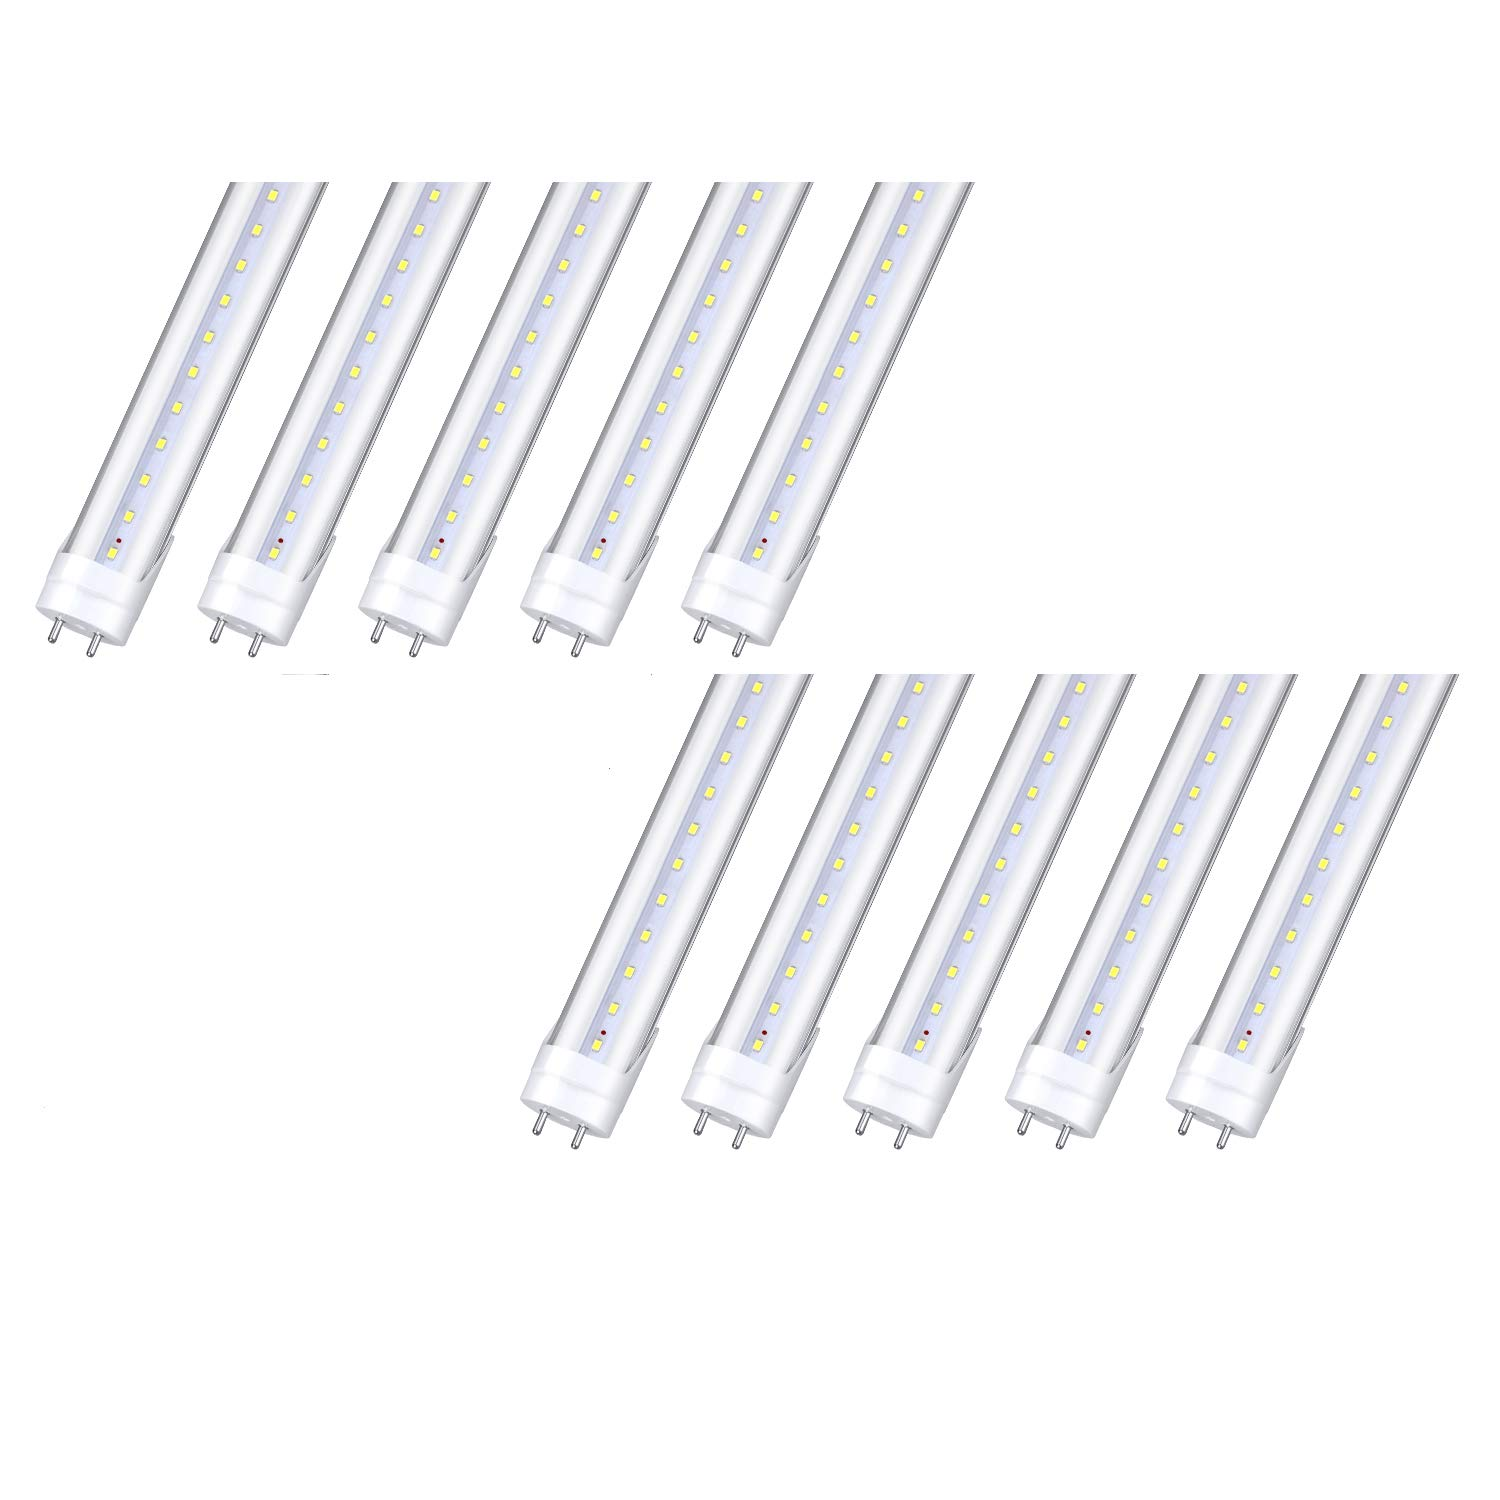 10-Pack, T8 LED Shop Light Tube, 4ft, 18W (40W CFL Equivalent), 6000K (Cold White), 85-308VAC, 110V 277V, Double-Ended Power, Bypass Ballast, Clear Cover, G13 Lighting Fixtures